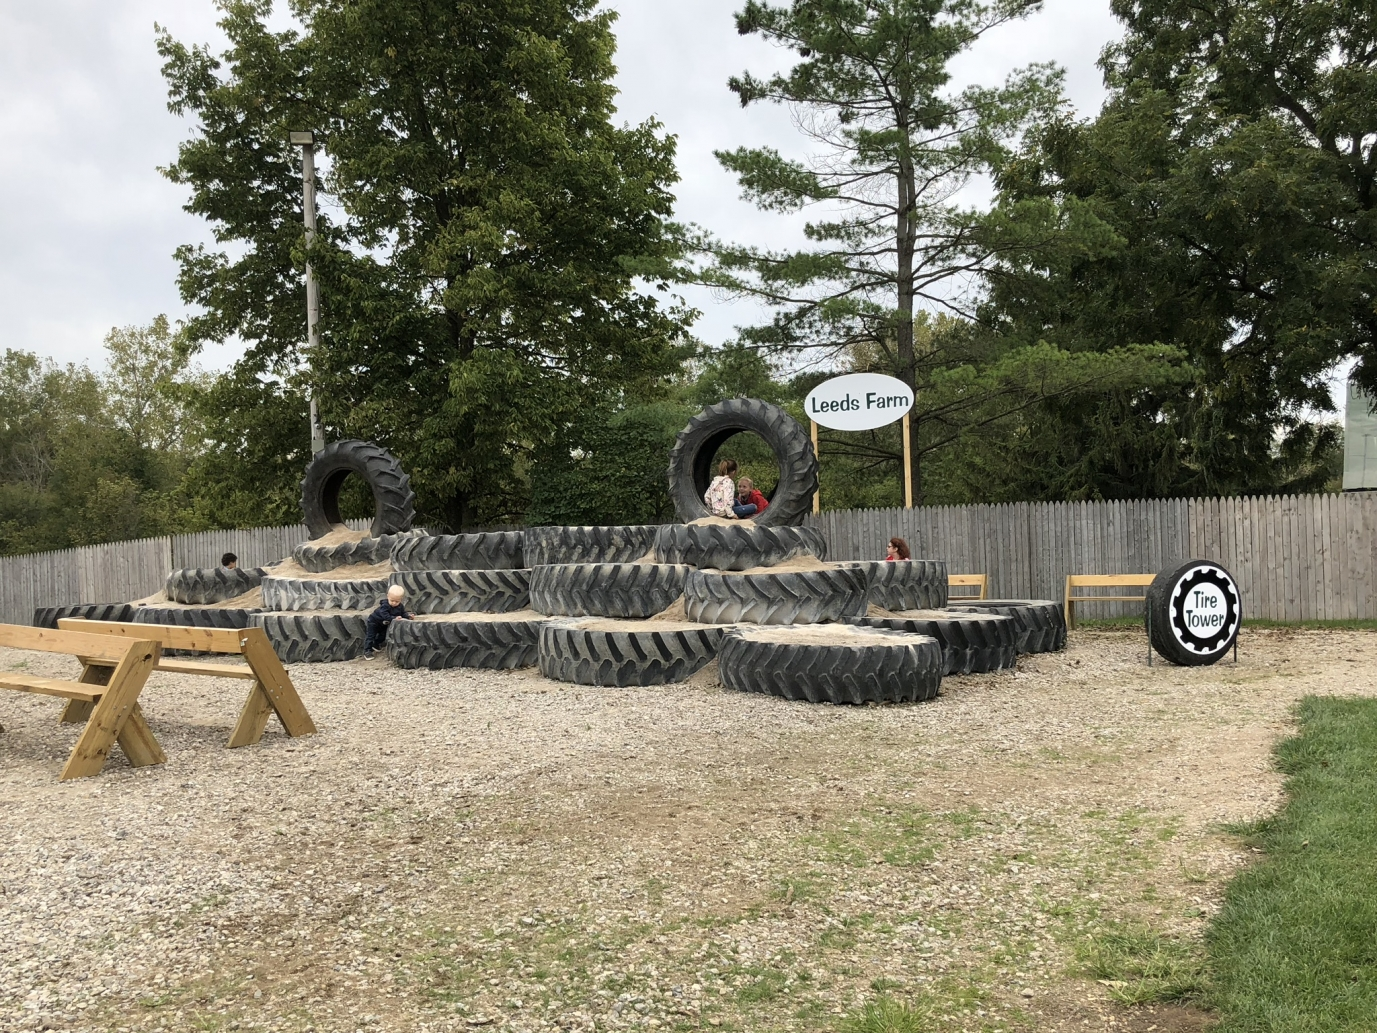 Leeds Farm Tire Tower